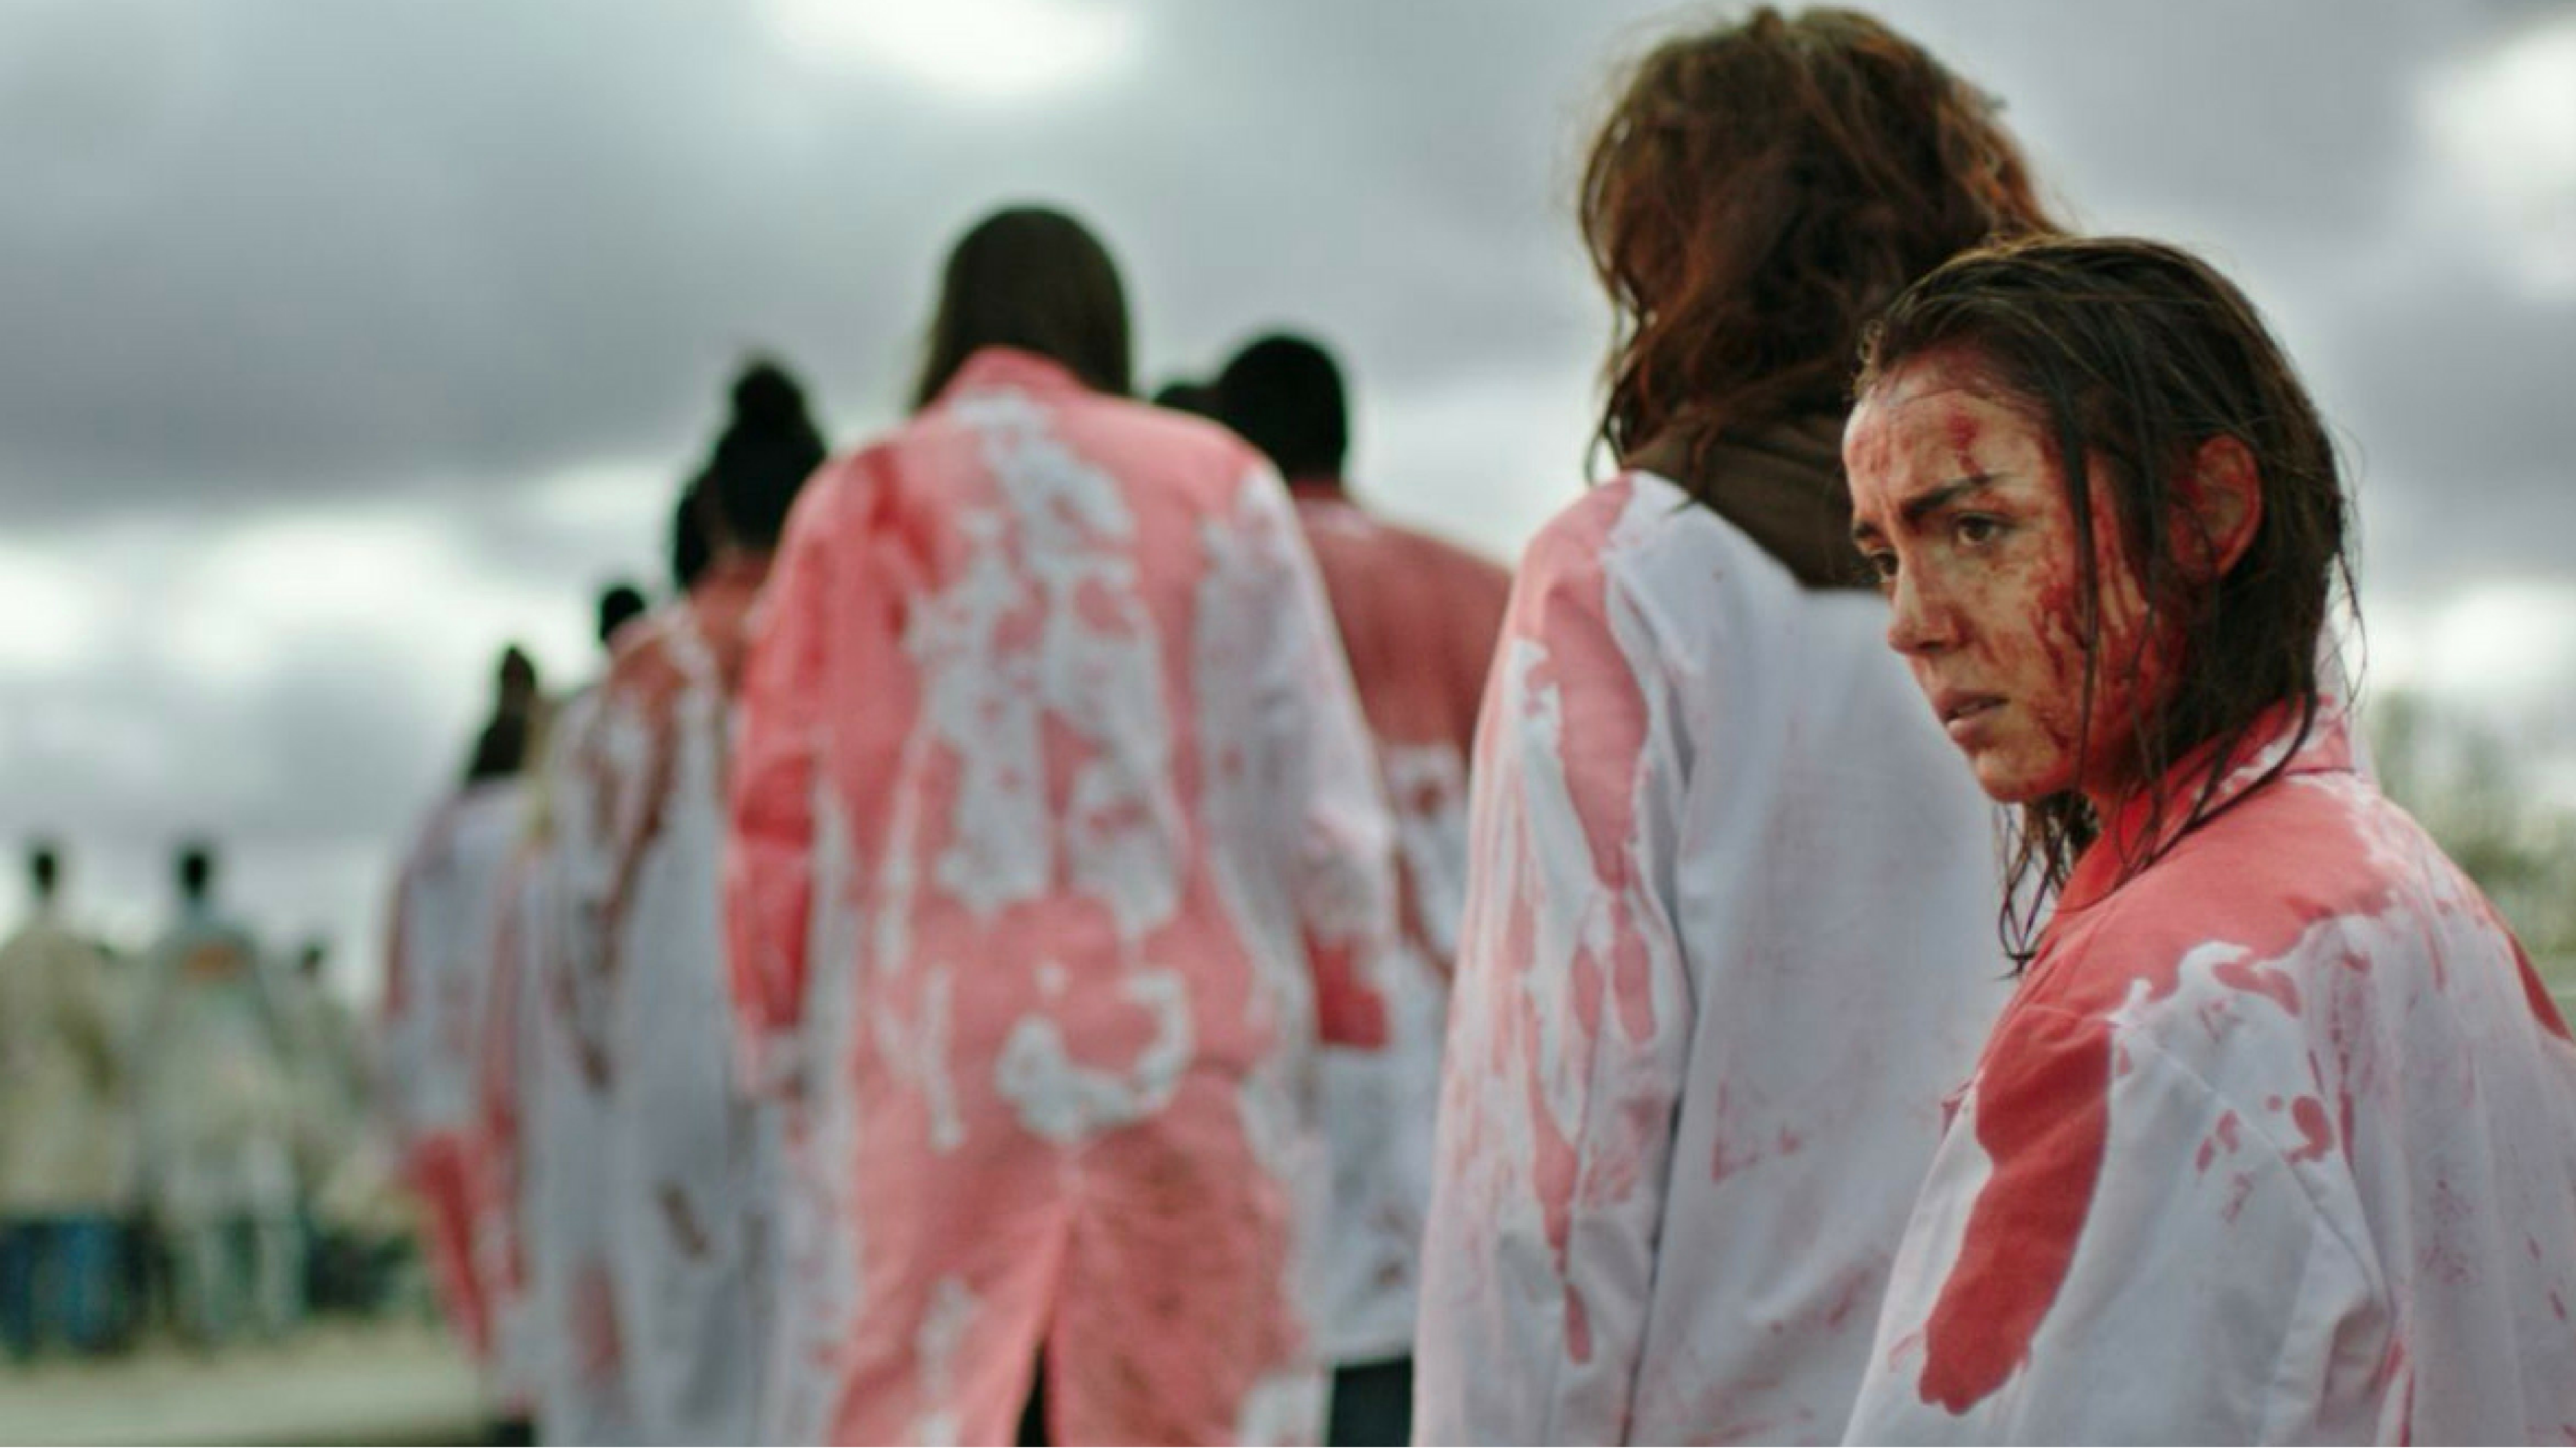 Raw/Grave, cannibal movie d'autore